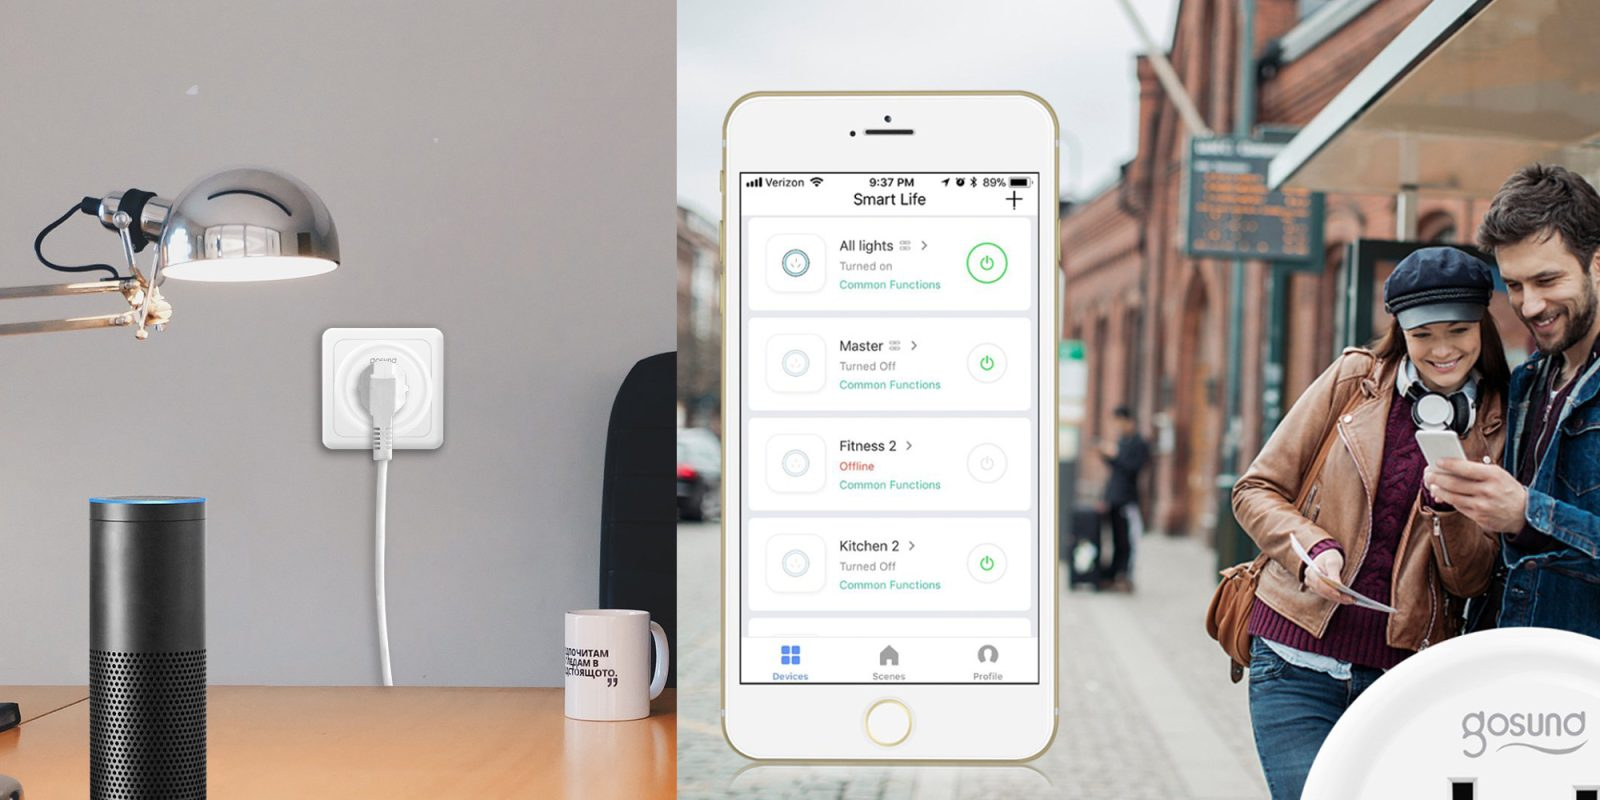 Amazon 1-day smart plug sale with options starting from $13 (Up to 32% off)